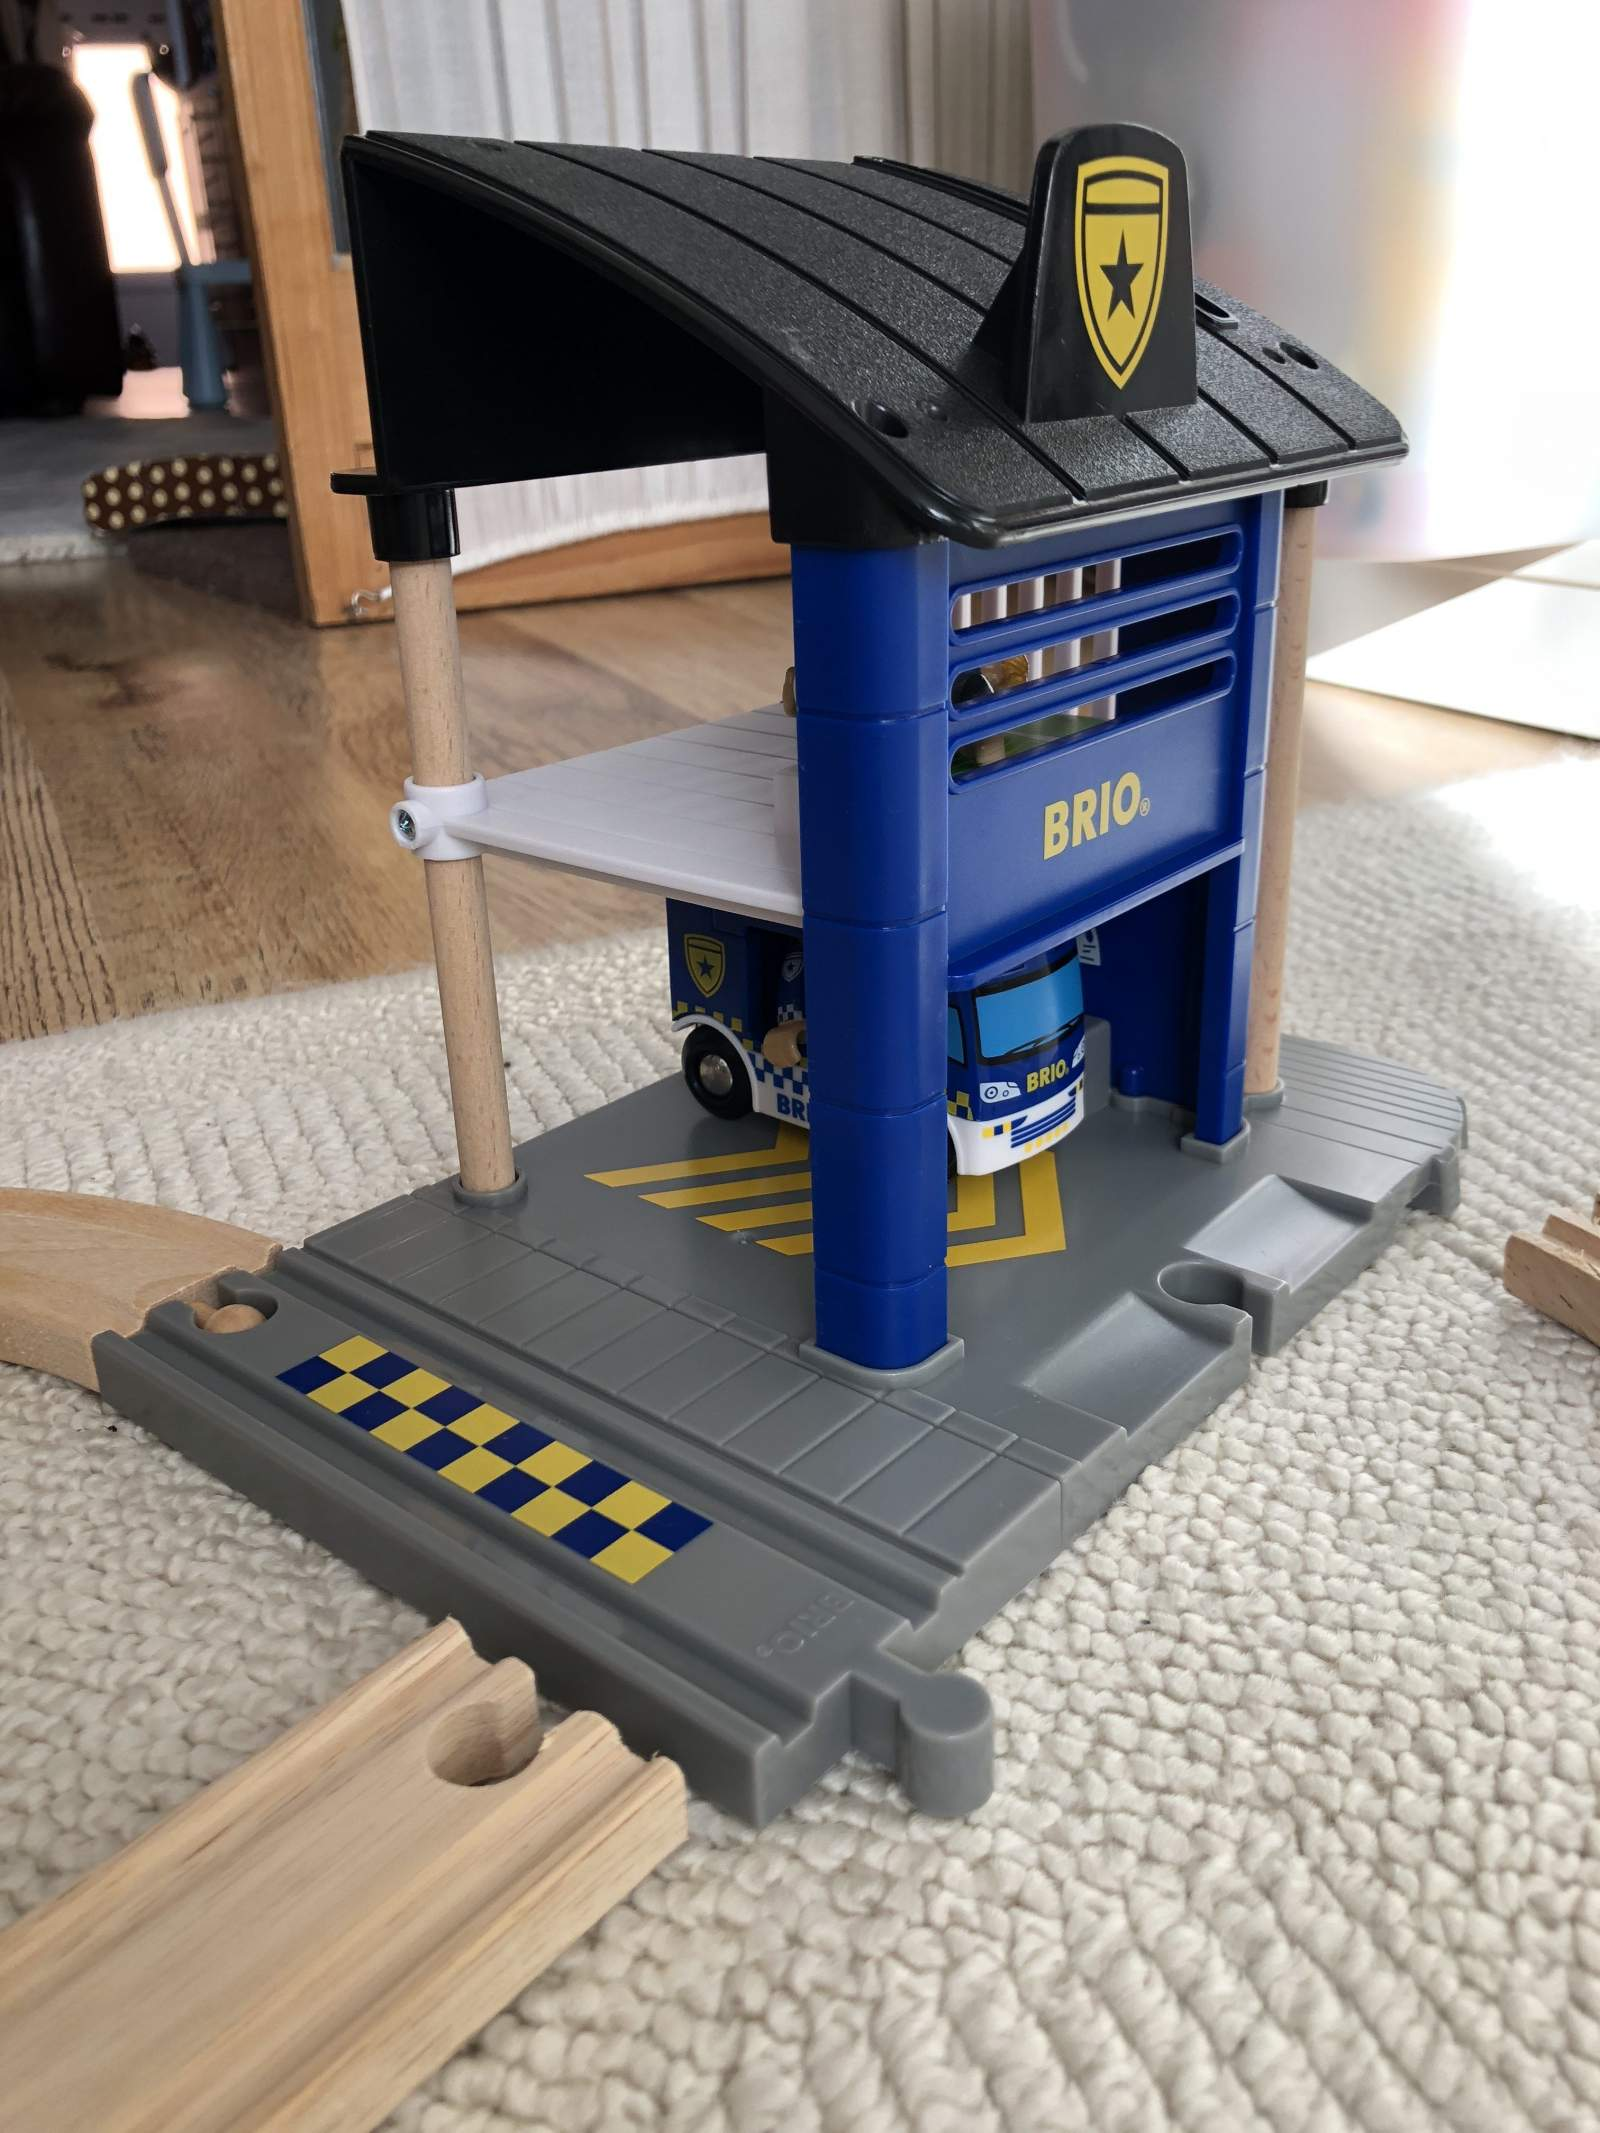 BRIO Police station from the side